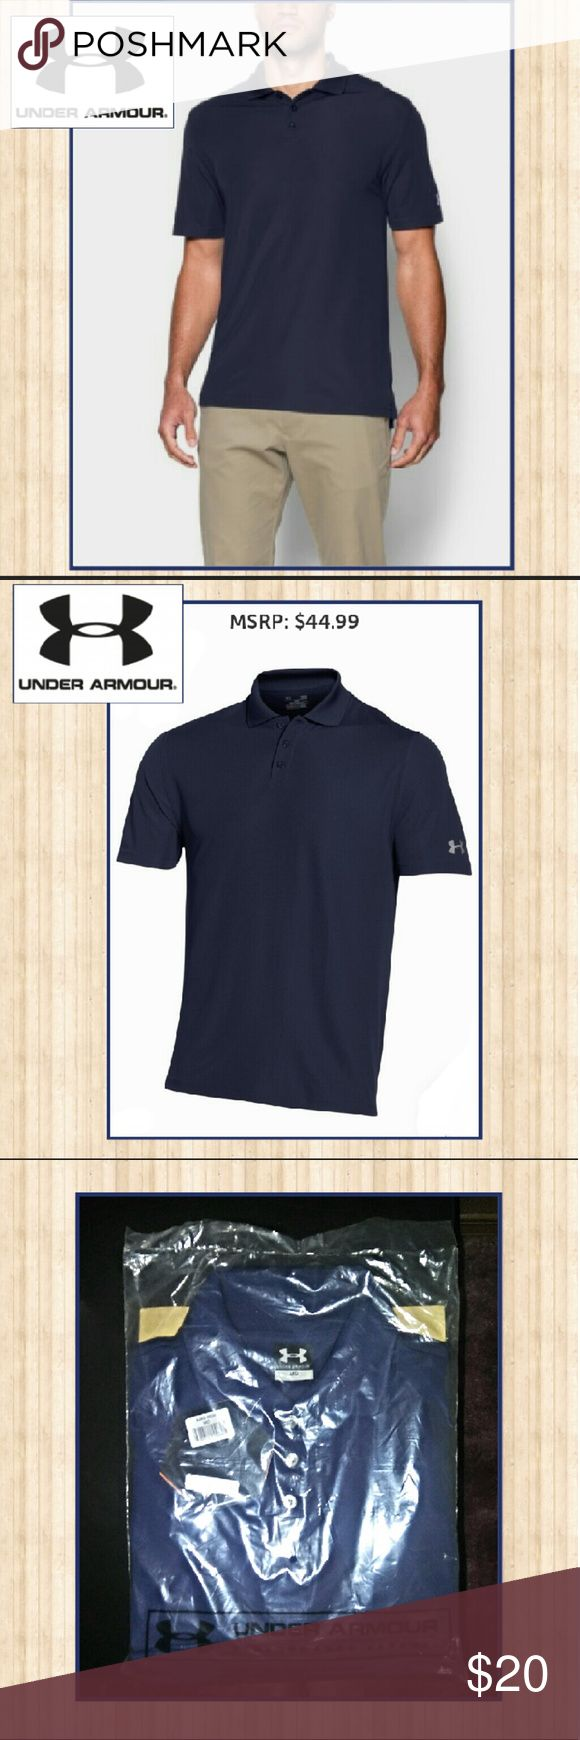 Under Armour Performance Apparel Collared Shirt Mens Under Armour Performance Apparel Collared Shirt up for sale! NWT, in bag still! Retails for $44 but less than half the cost here! Take advantage of this steal of a deal now! Color is navy blue and size is Medium. Please like or share! Under Armour Shirts